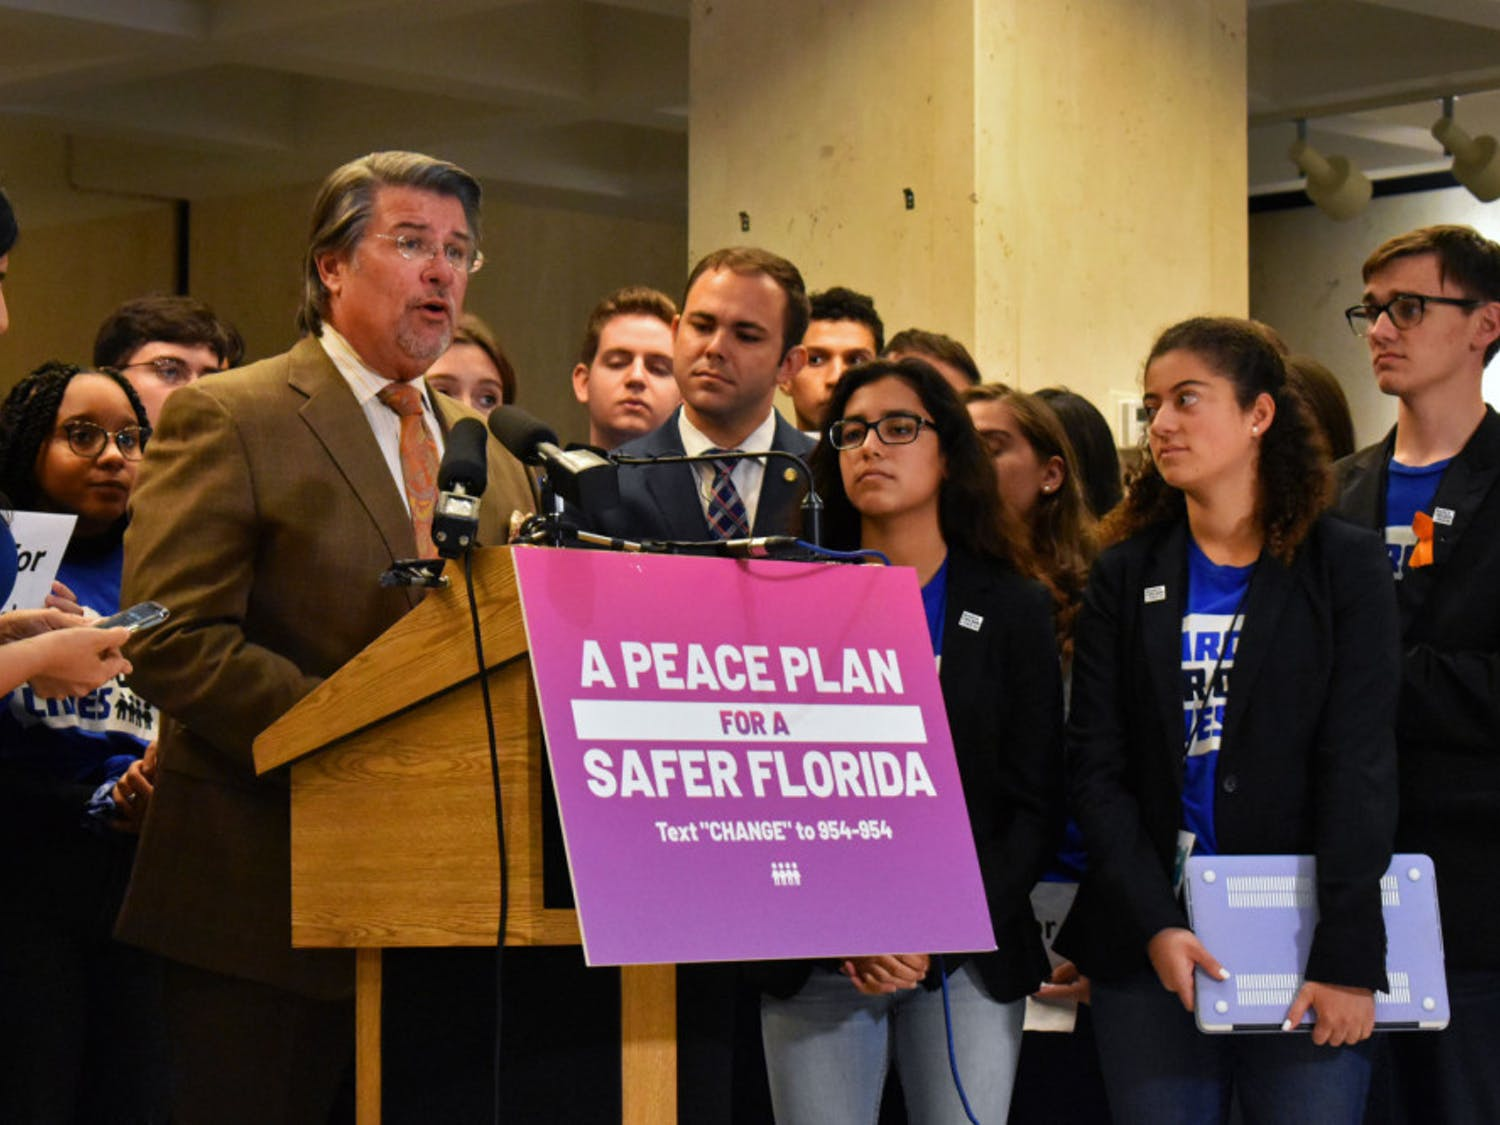 """Sen. Gary Farmer (D) said that gun violence is a public health emergency and that legislators should treat it as such. """"The time to act is now,"""" he said."""